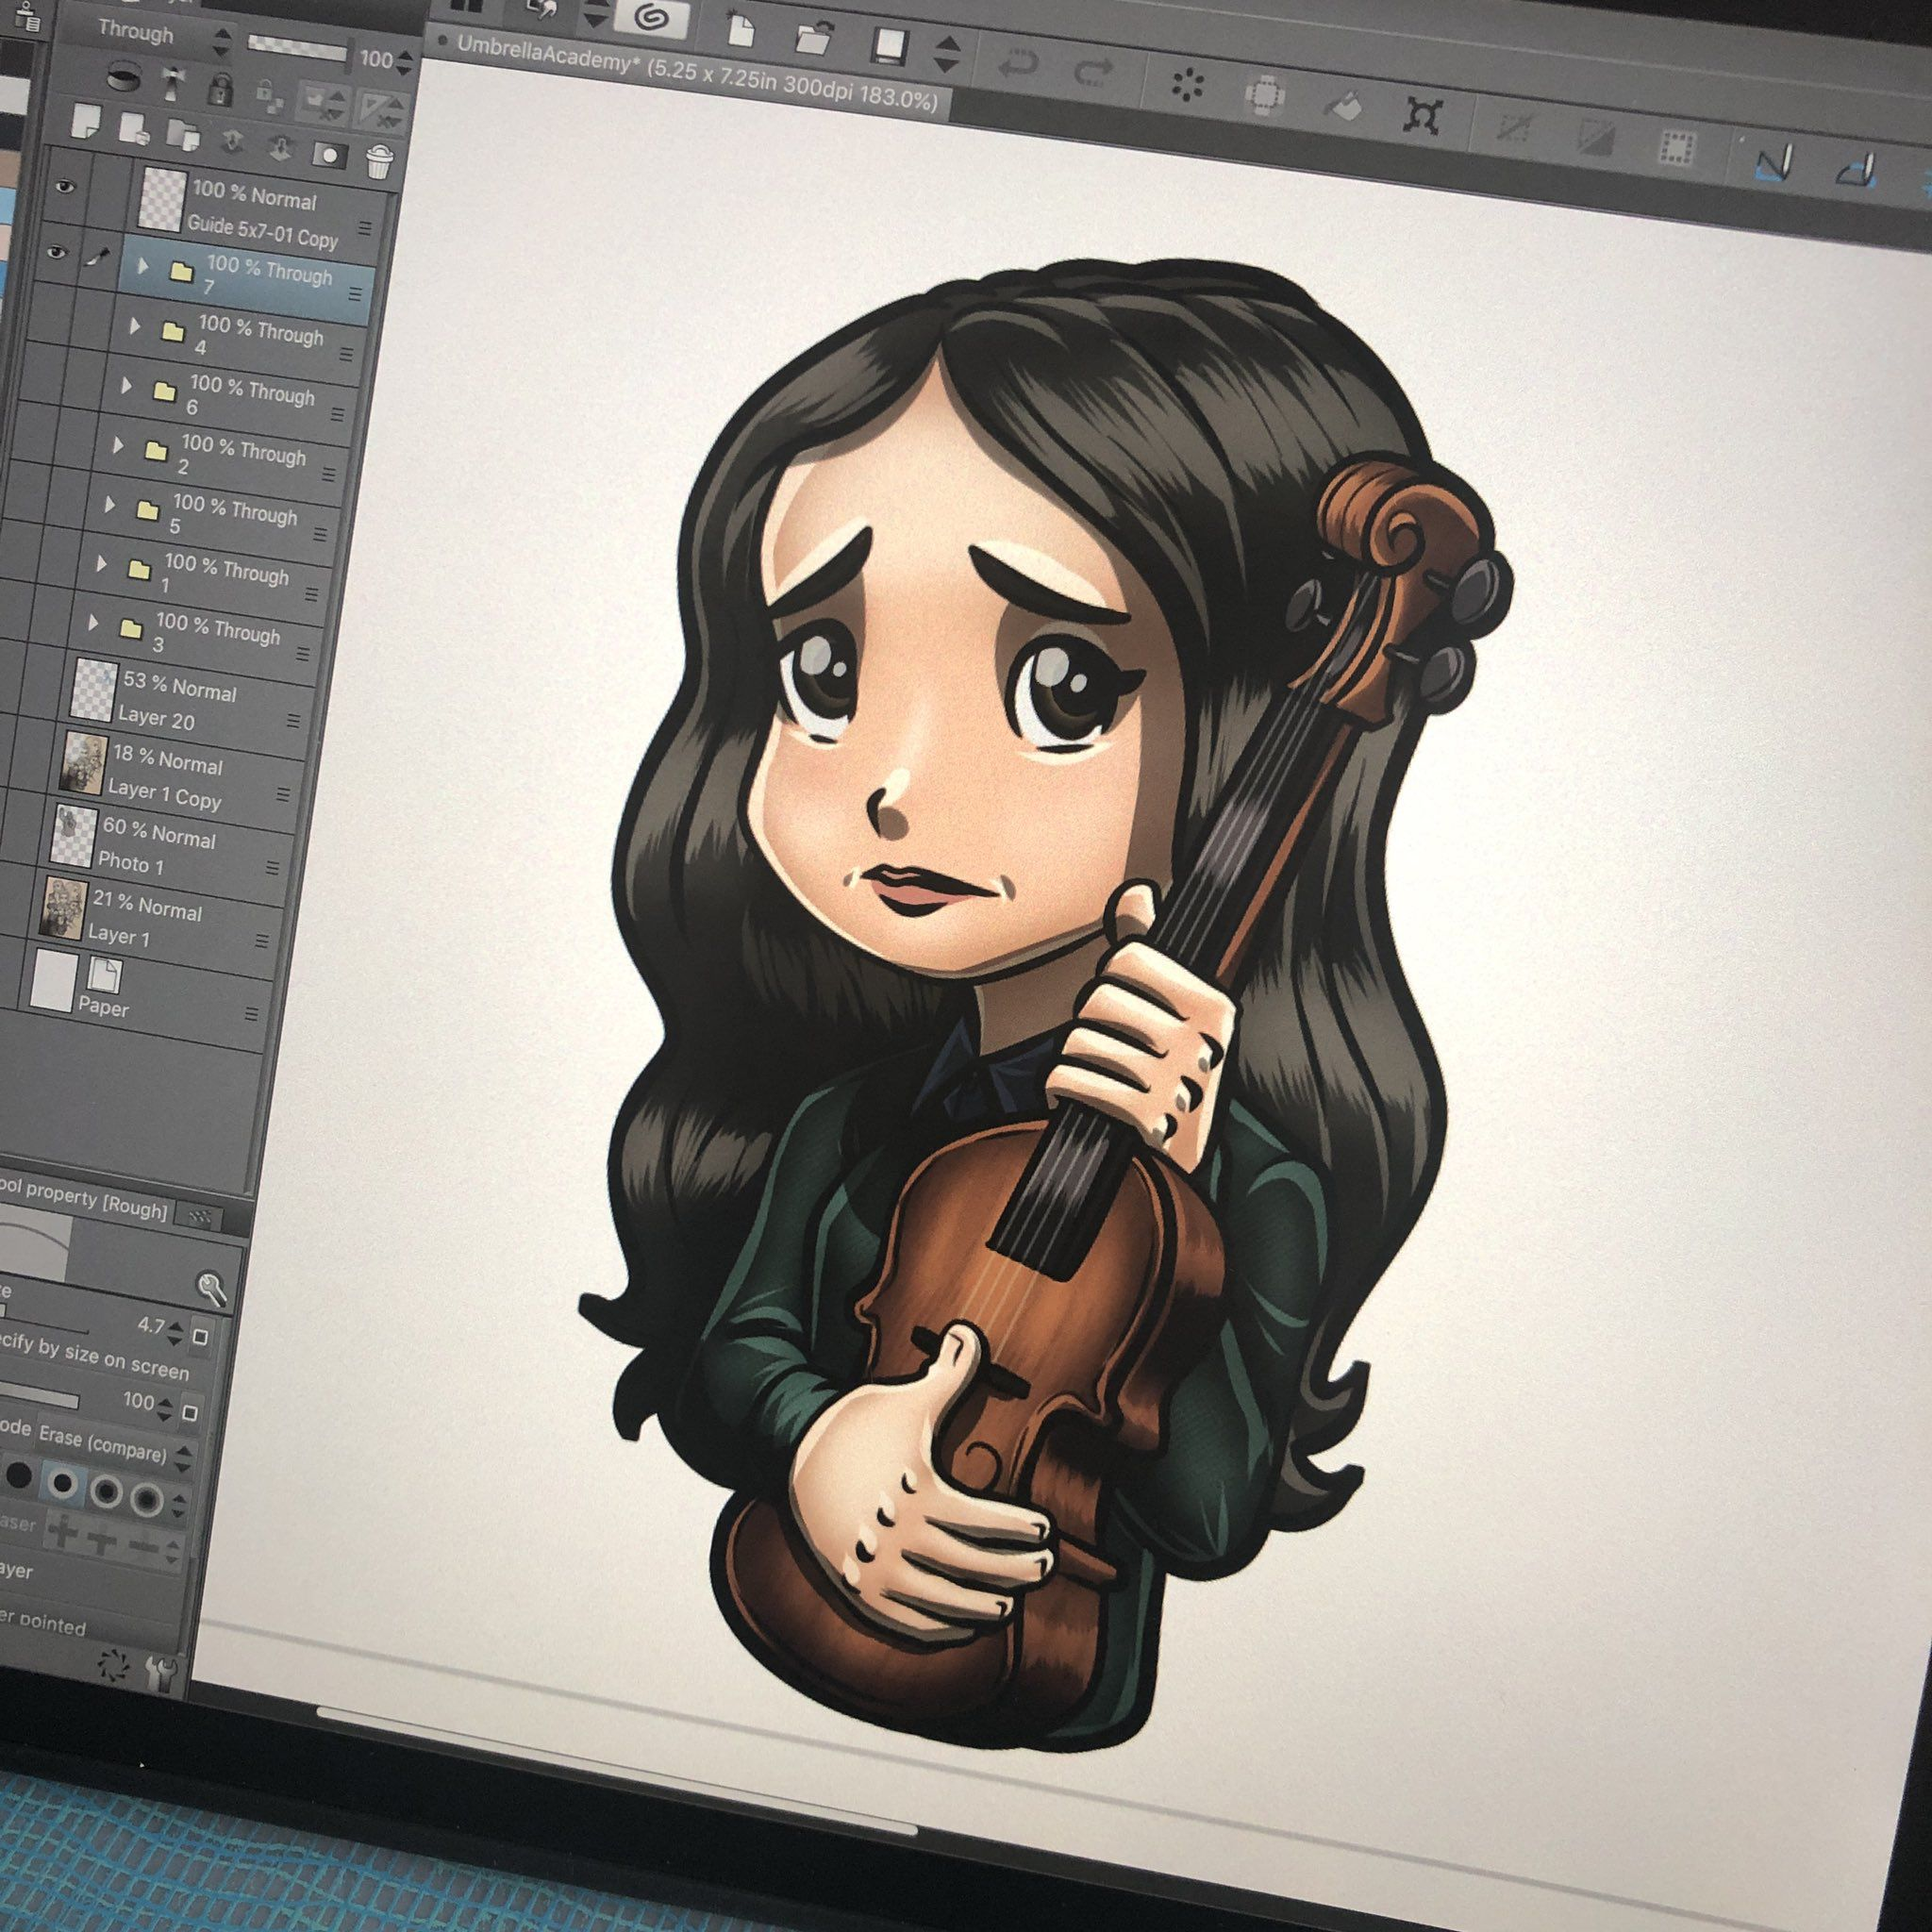 Currently On Deck Number 7 More To Come Ellenpage Umbrellaacad Umbrellaacademy Ellenpage Vany With Images Lord Mesa Art Really Cool Drawings Clip Studio Paint